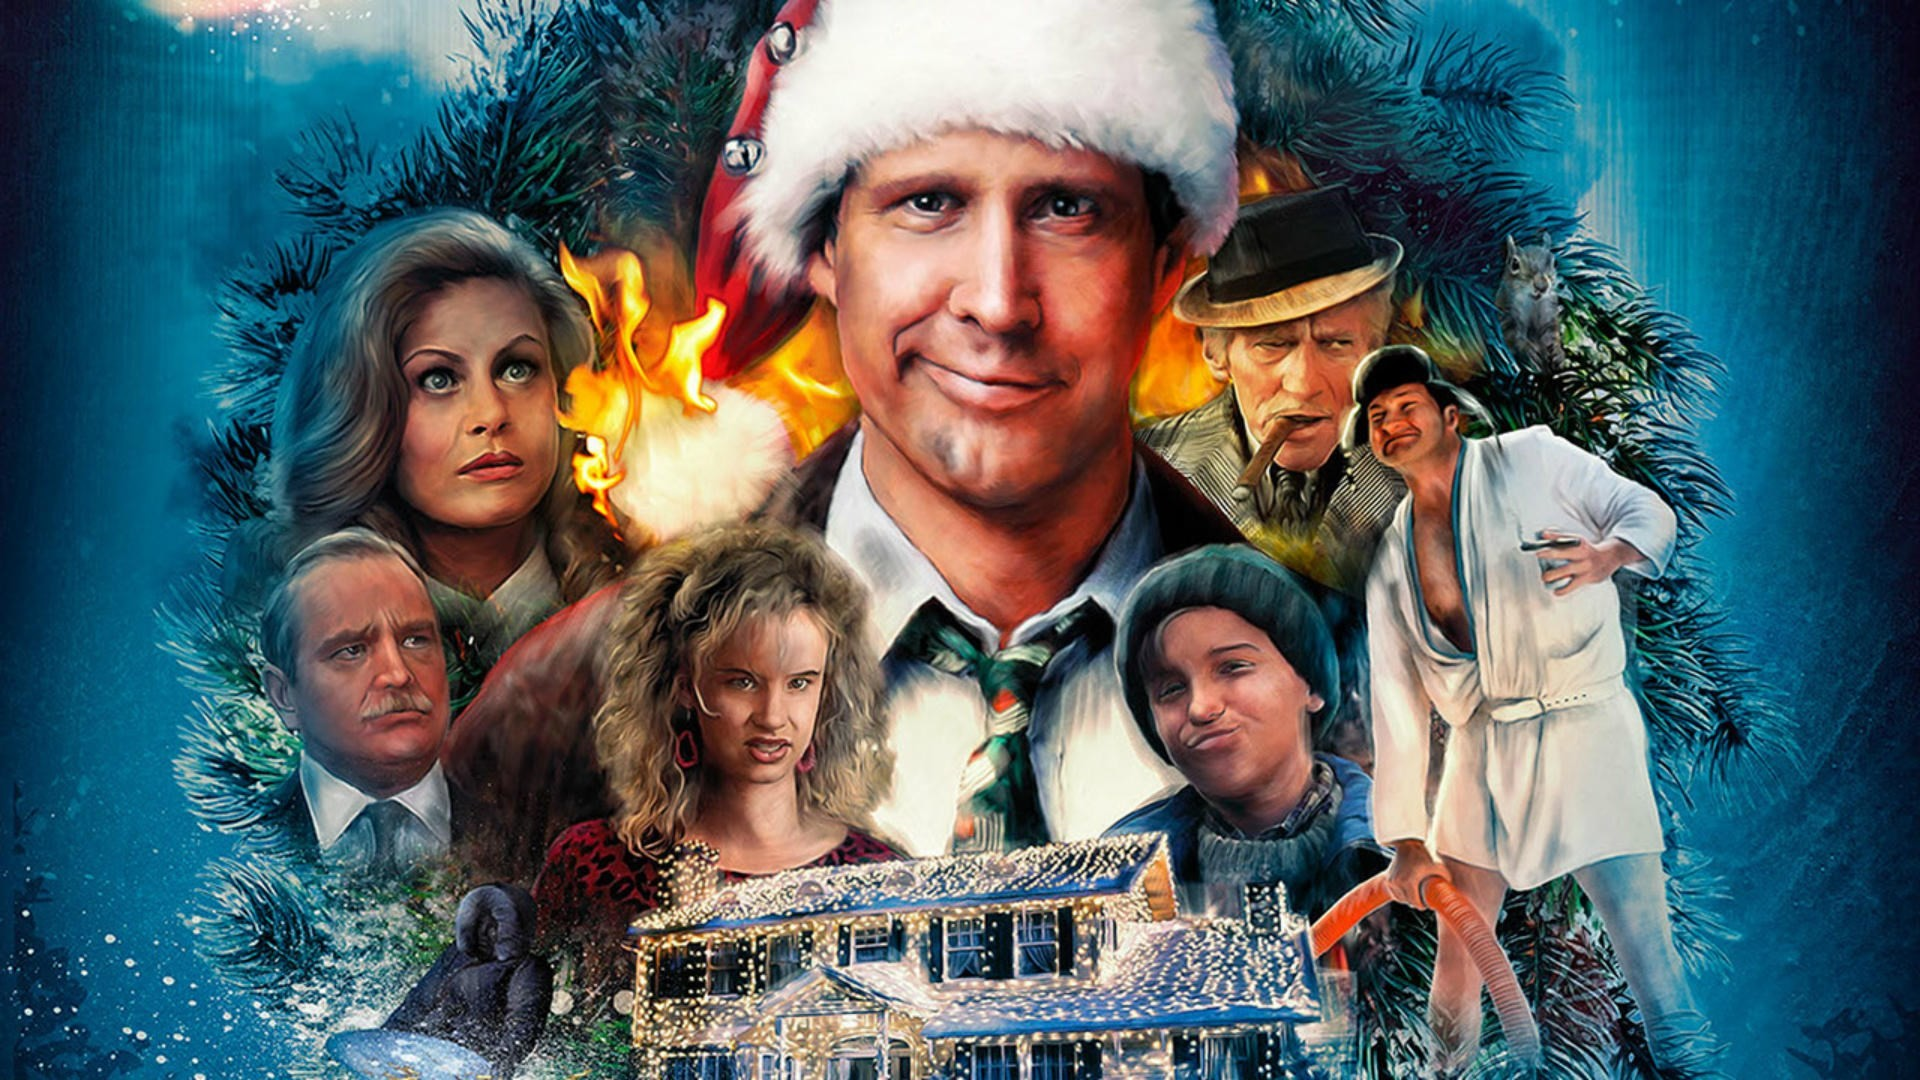 free high resolution wallpaper national lampoons christmas vacation, Dee  Walter 2017-03-20